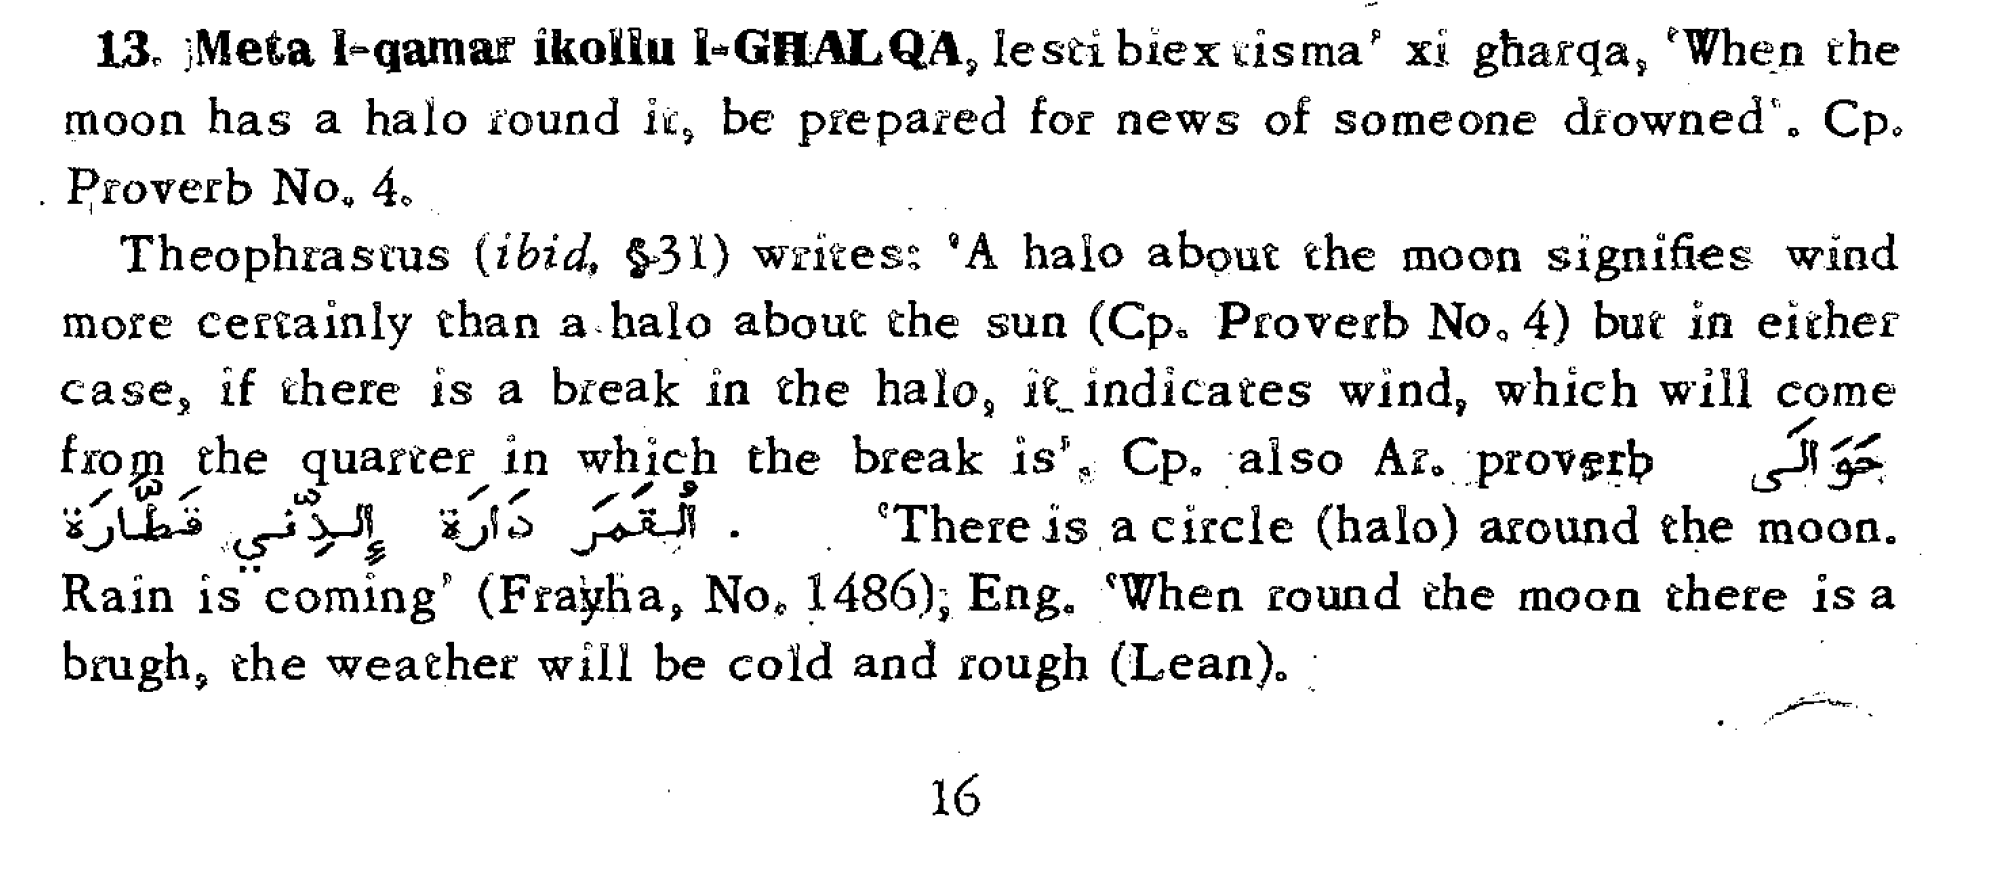 MALTESE METEOROLOGICAL AND AGRICULTUR~L PROVERBS By .J. AQUILINA